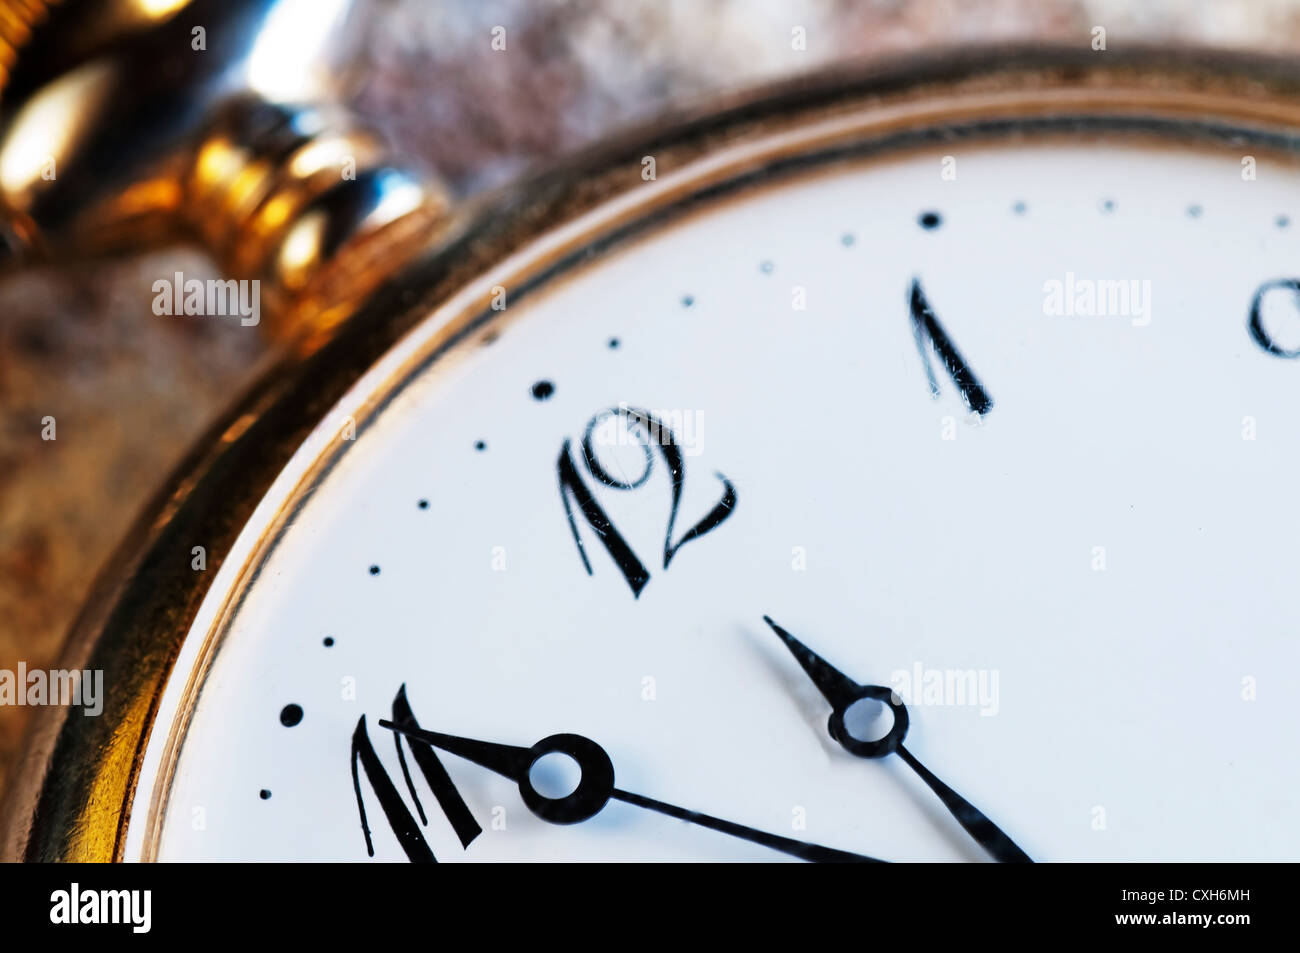 time is running 5 before 12 - Stock Image